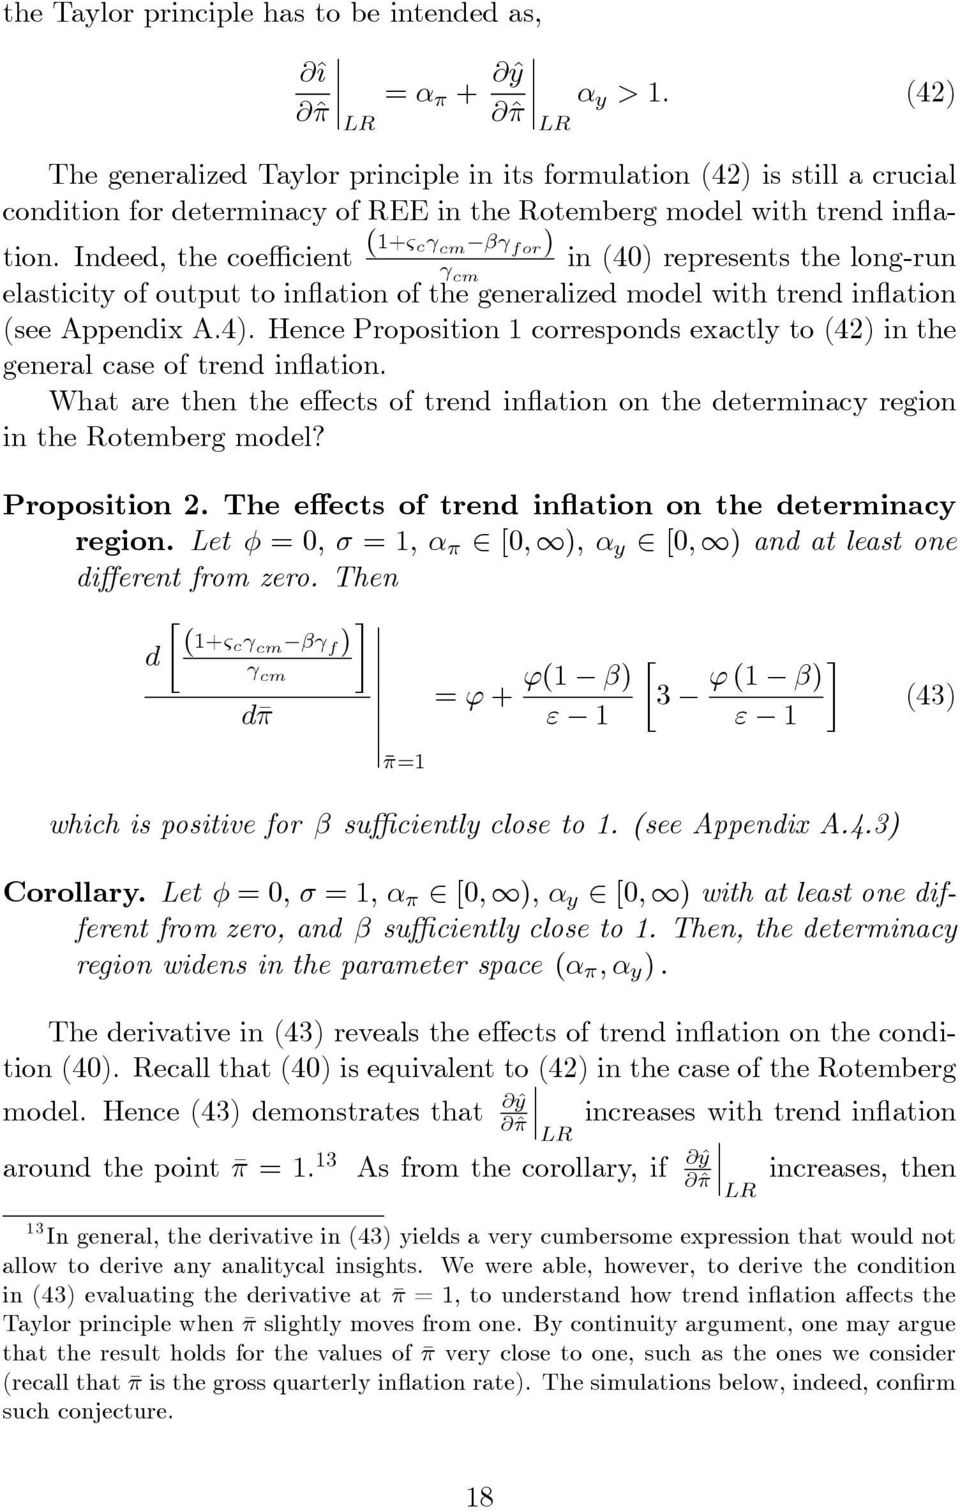 Indeed, the coe cient (+& c cm for ) in (4) represents the long-run cm elasticity of output to in ation of the generalized model with trend in ation (see Appendix A.4). Hence Proposition corresponds exactly to (4) in the general case of trend in ation.